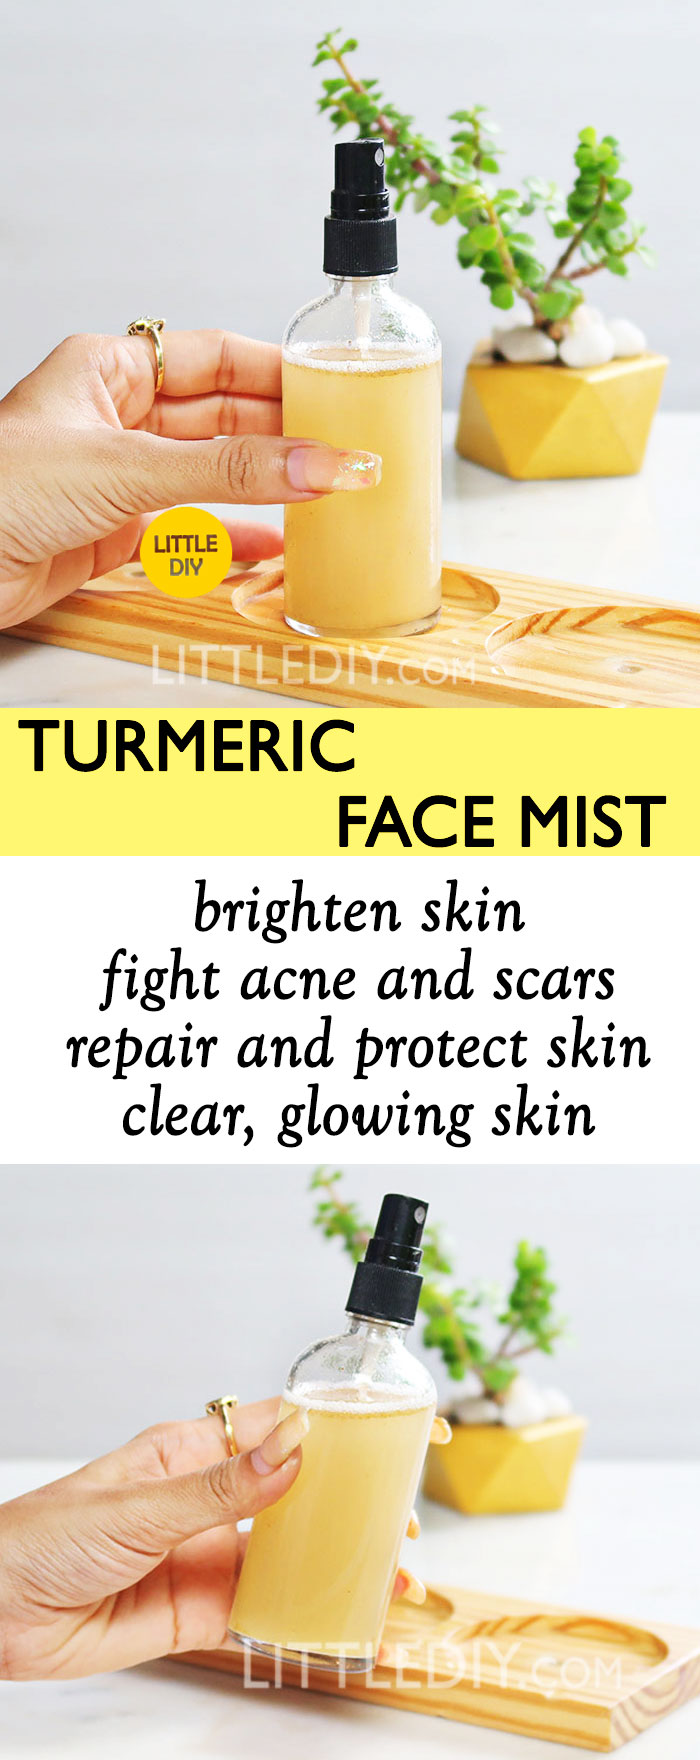 SKIN CLEARING TURMERIC FACE MIST